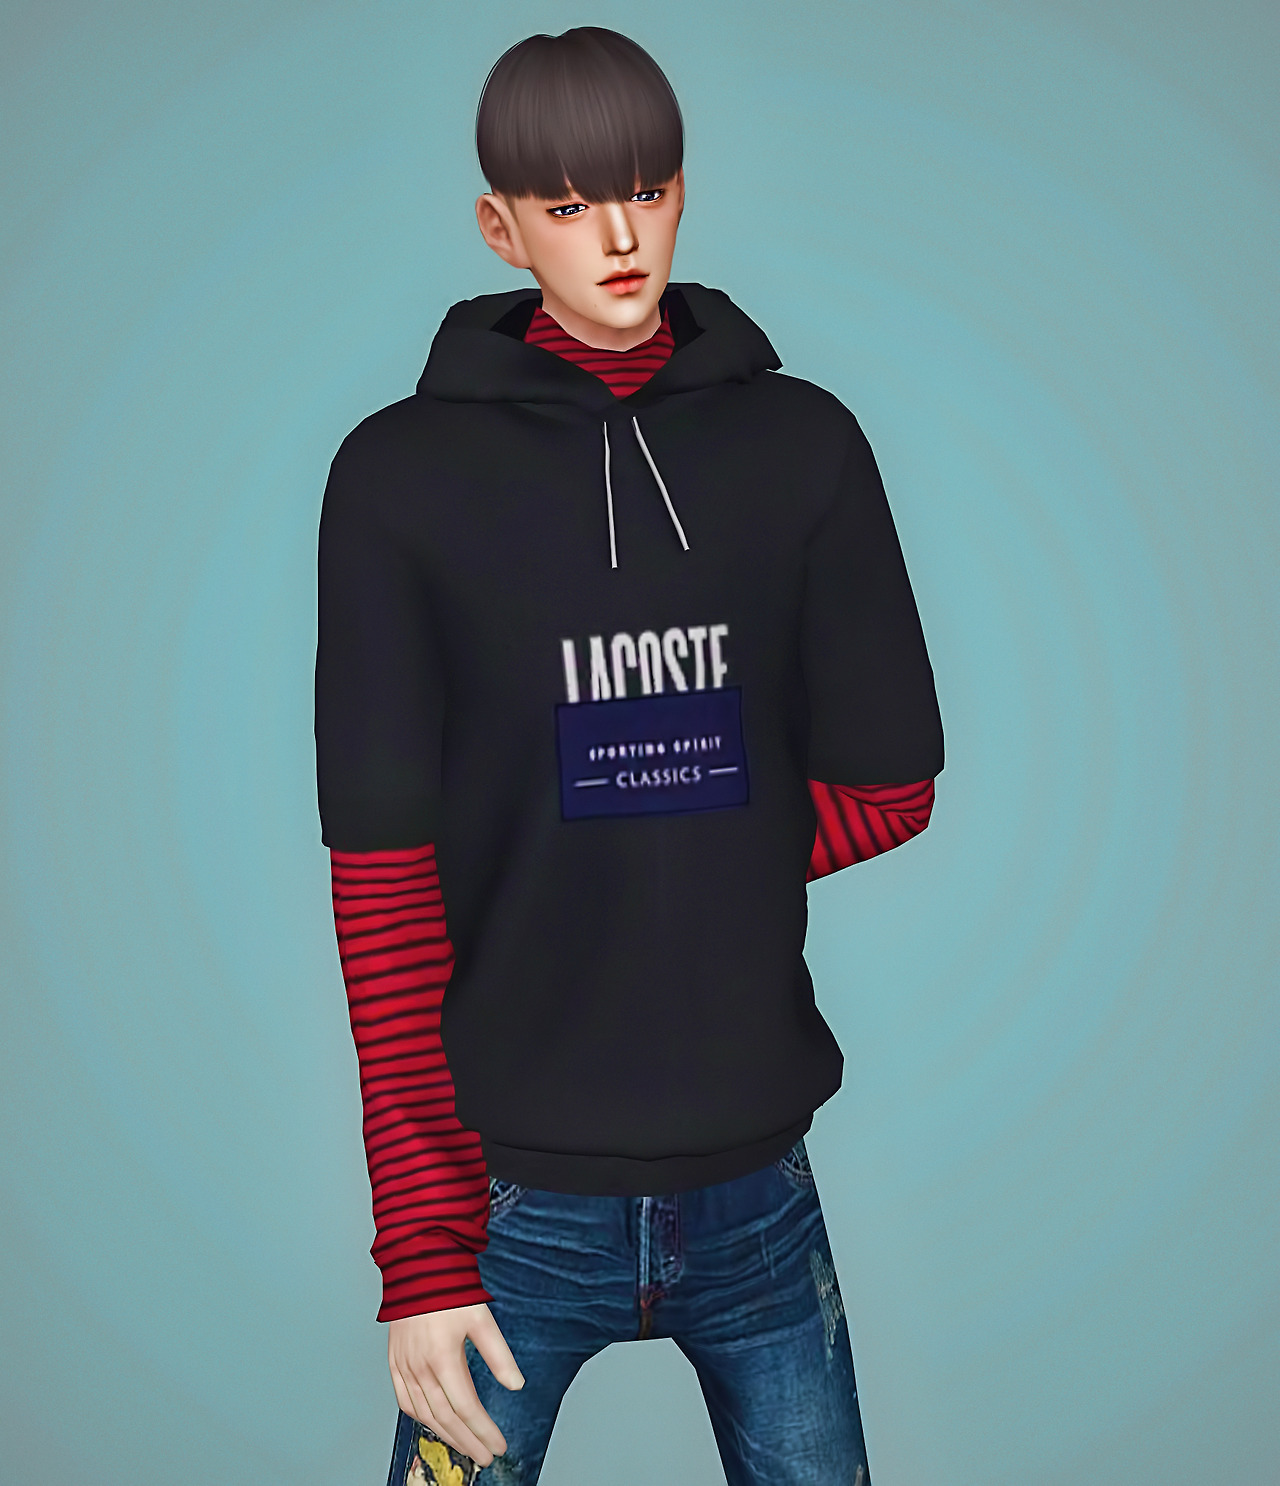 Sims 4 CC's - The Best: M Nate hoodie by Meeyou